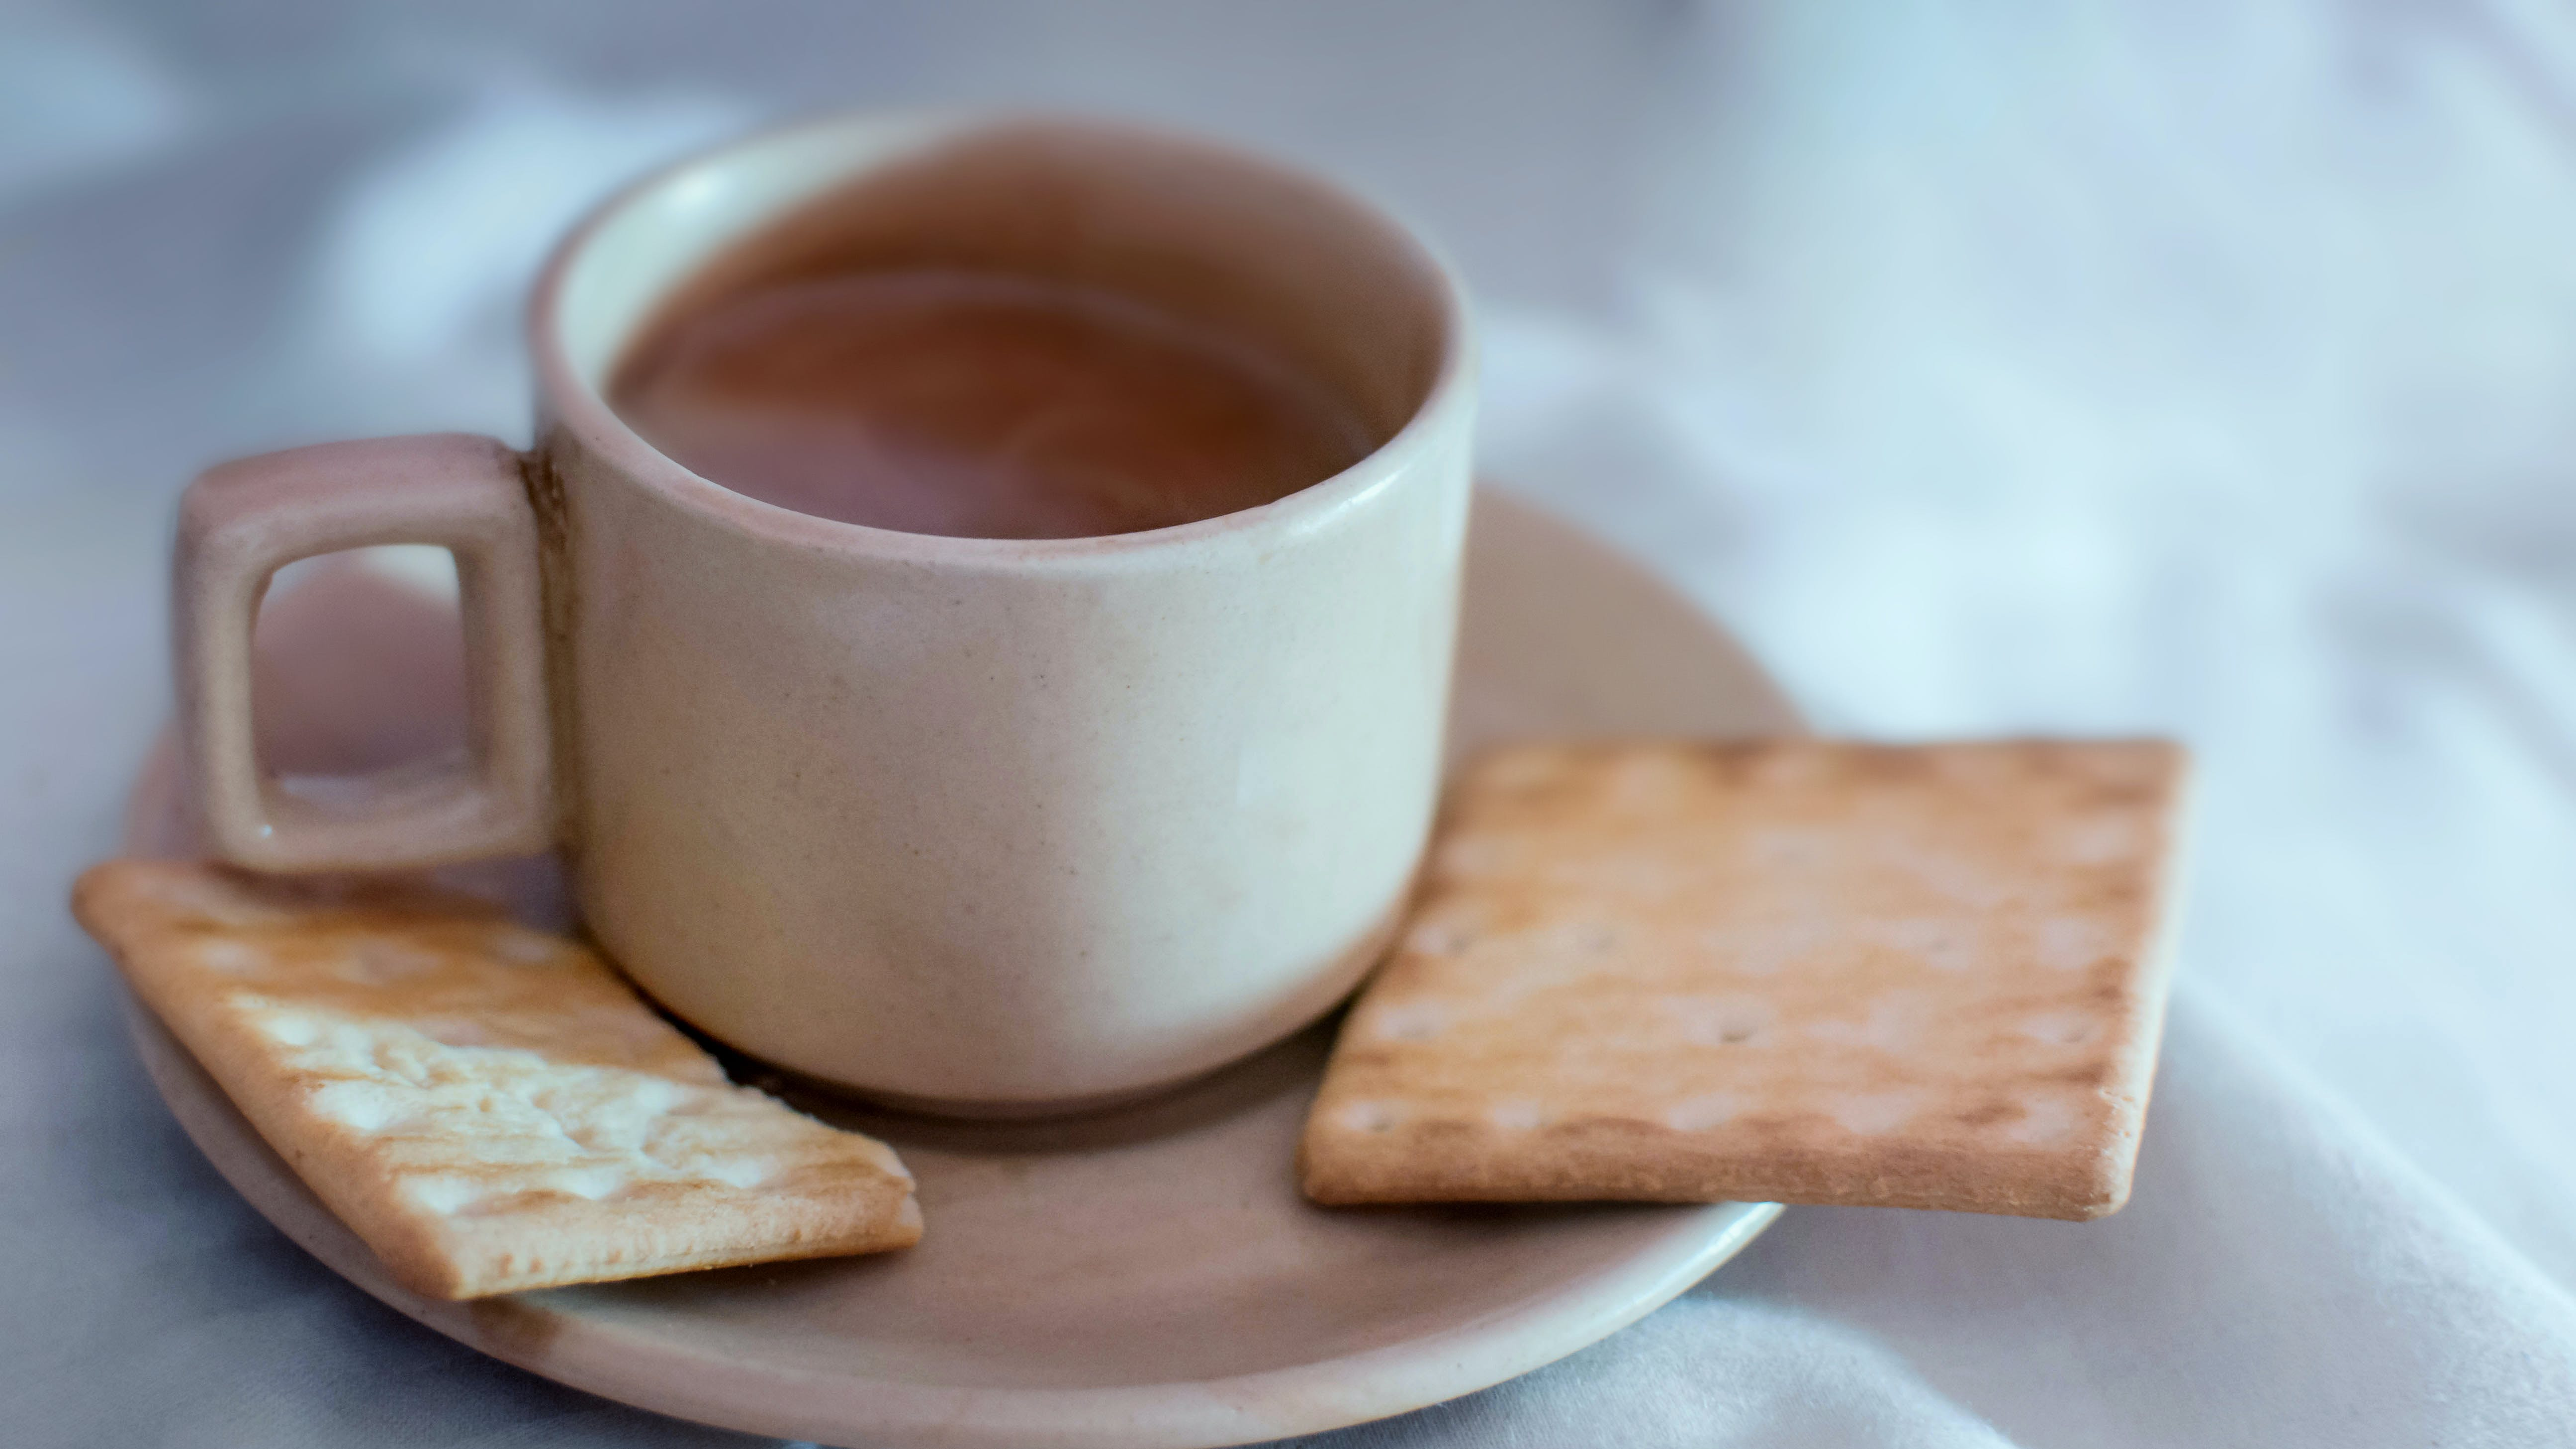 Free stock photo of cup, photography, tea, morning